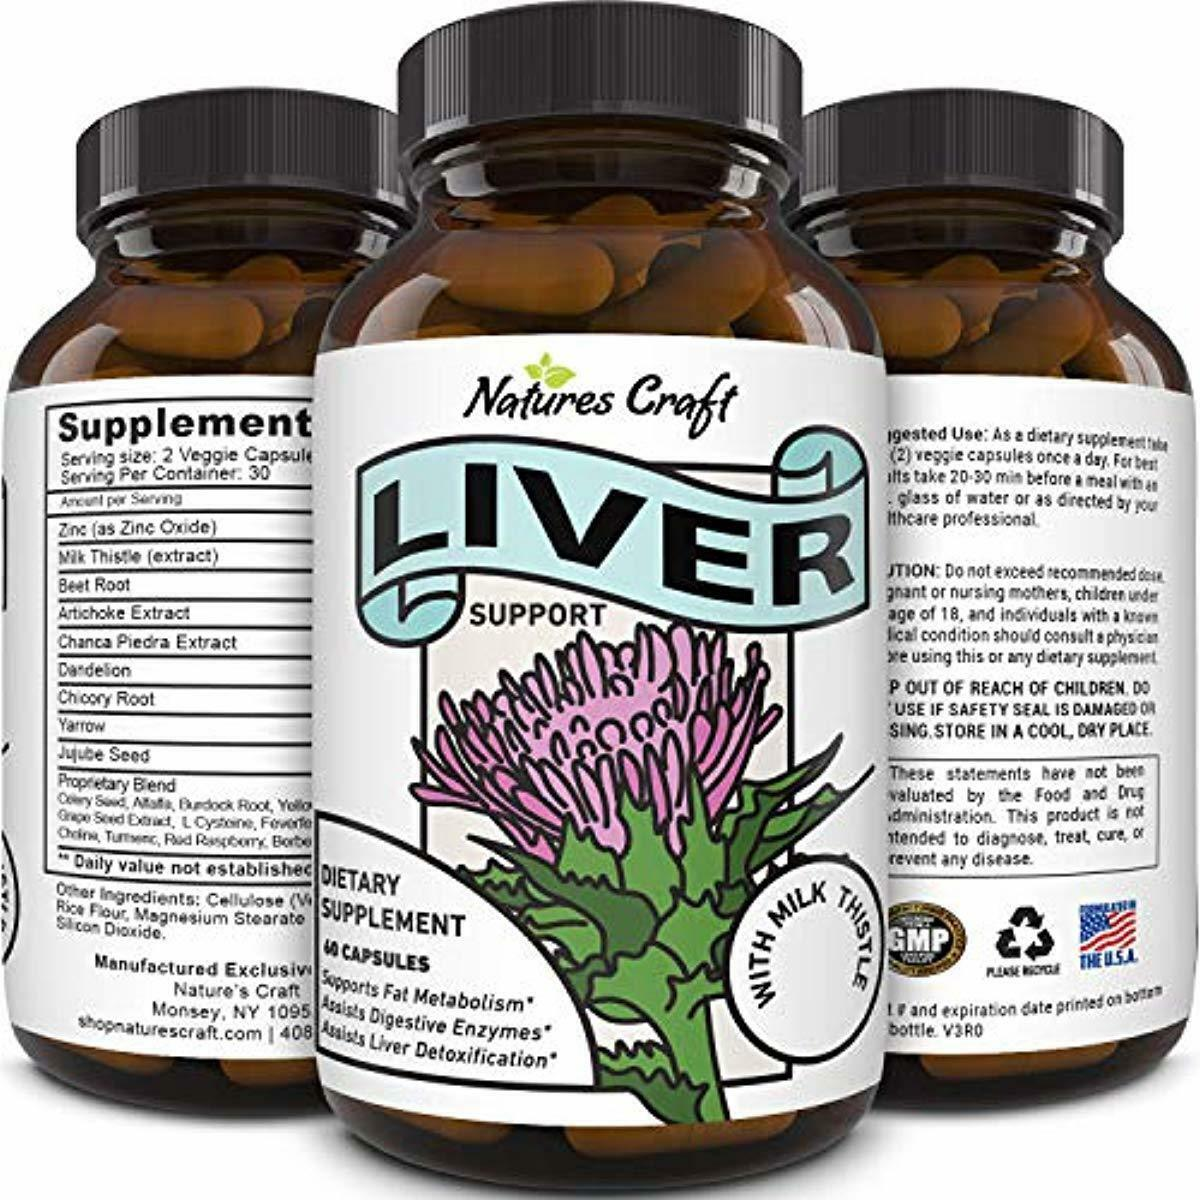 Natures Craft's Best Liver Cleanse Detox Support Supplement